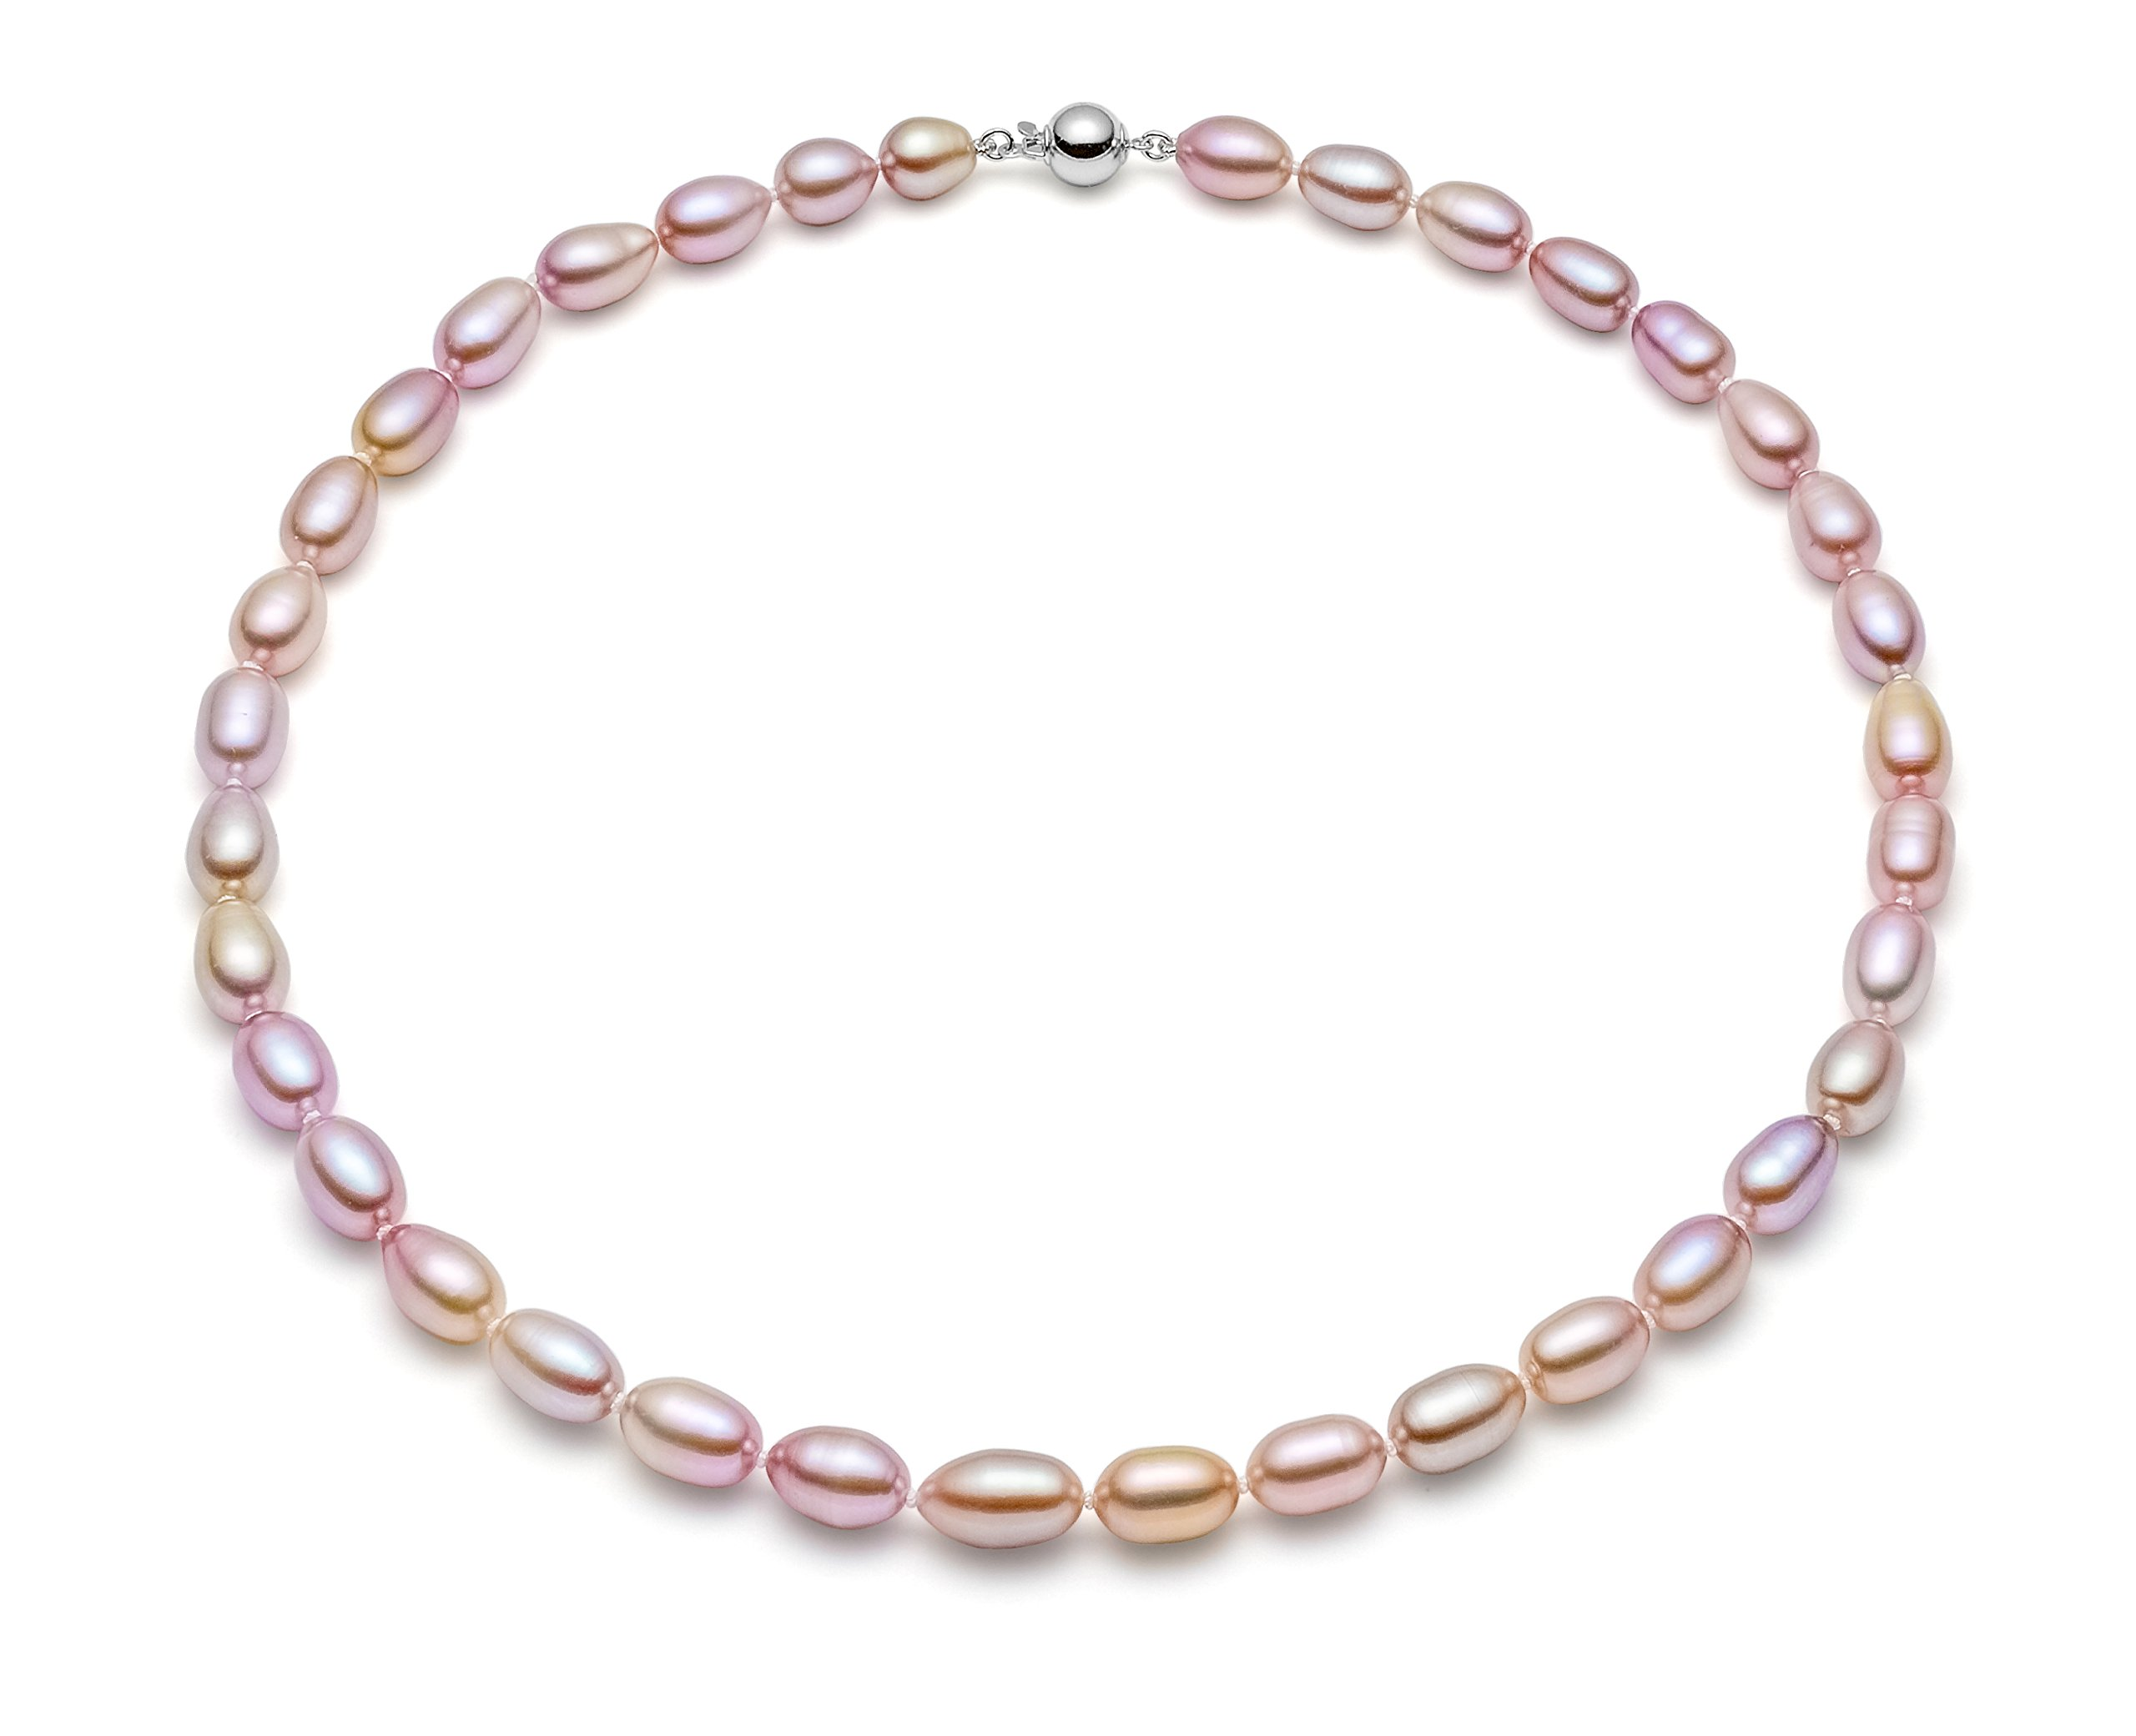 HinsonGayle AAA Handpicked 8-8.5mm Lavender Oval Freshwater Cultured Pearl Necklace Silver 18 inch-18 in length